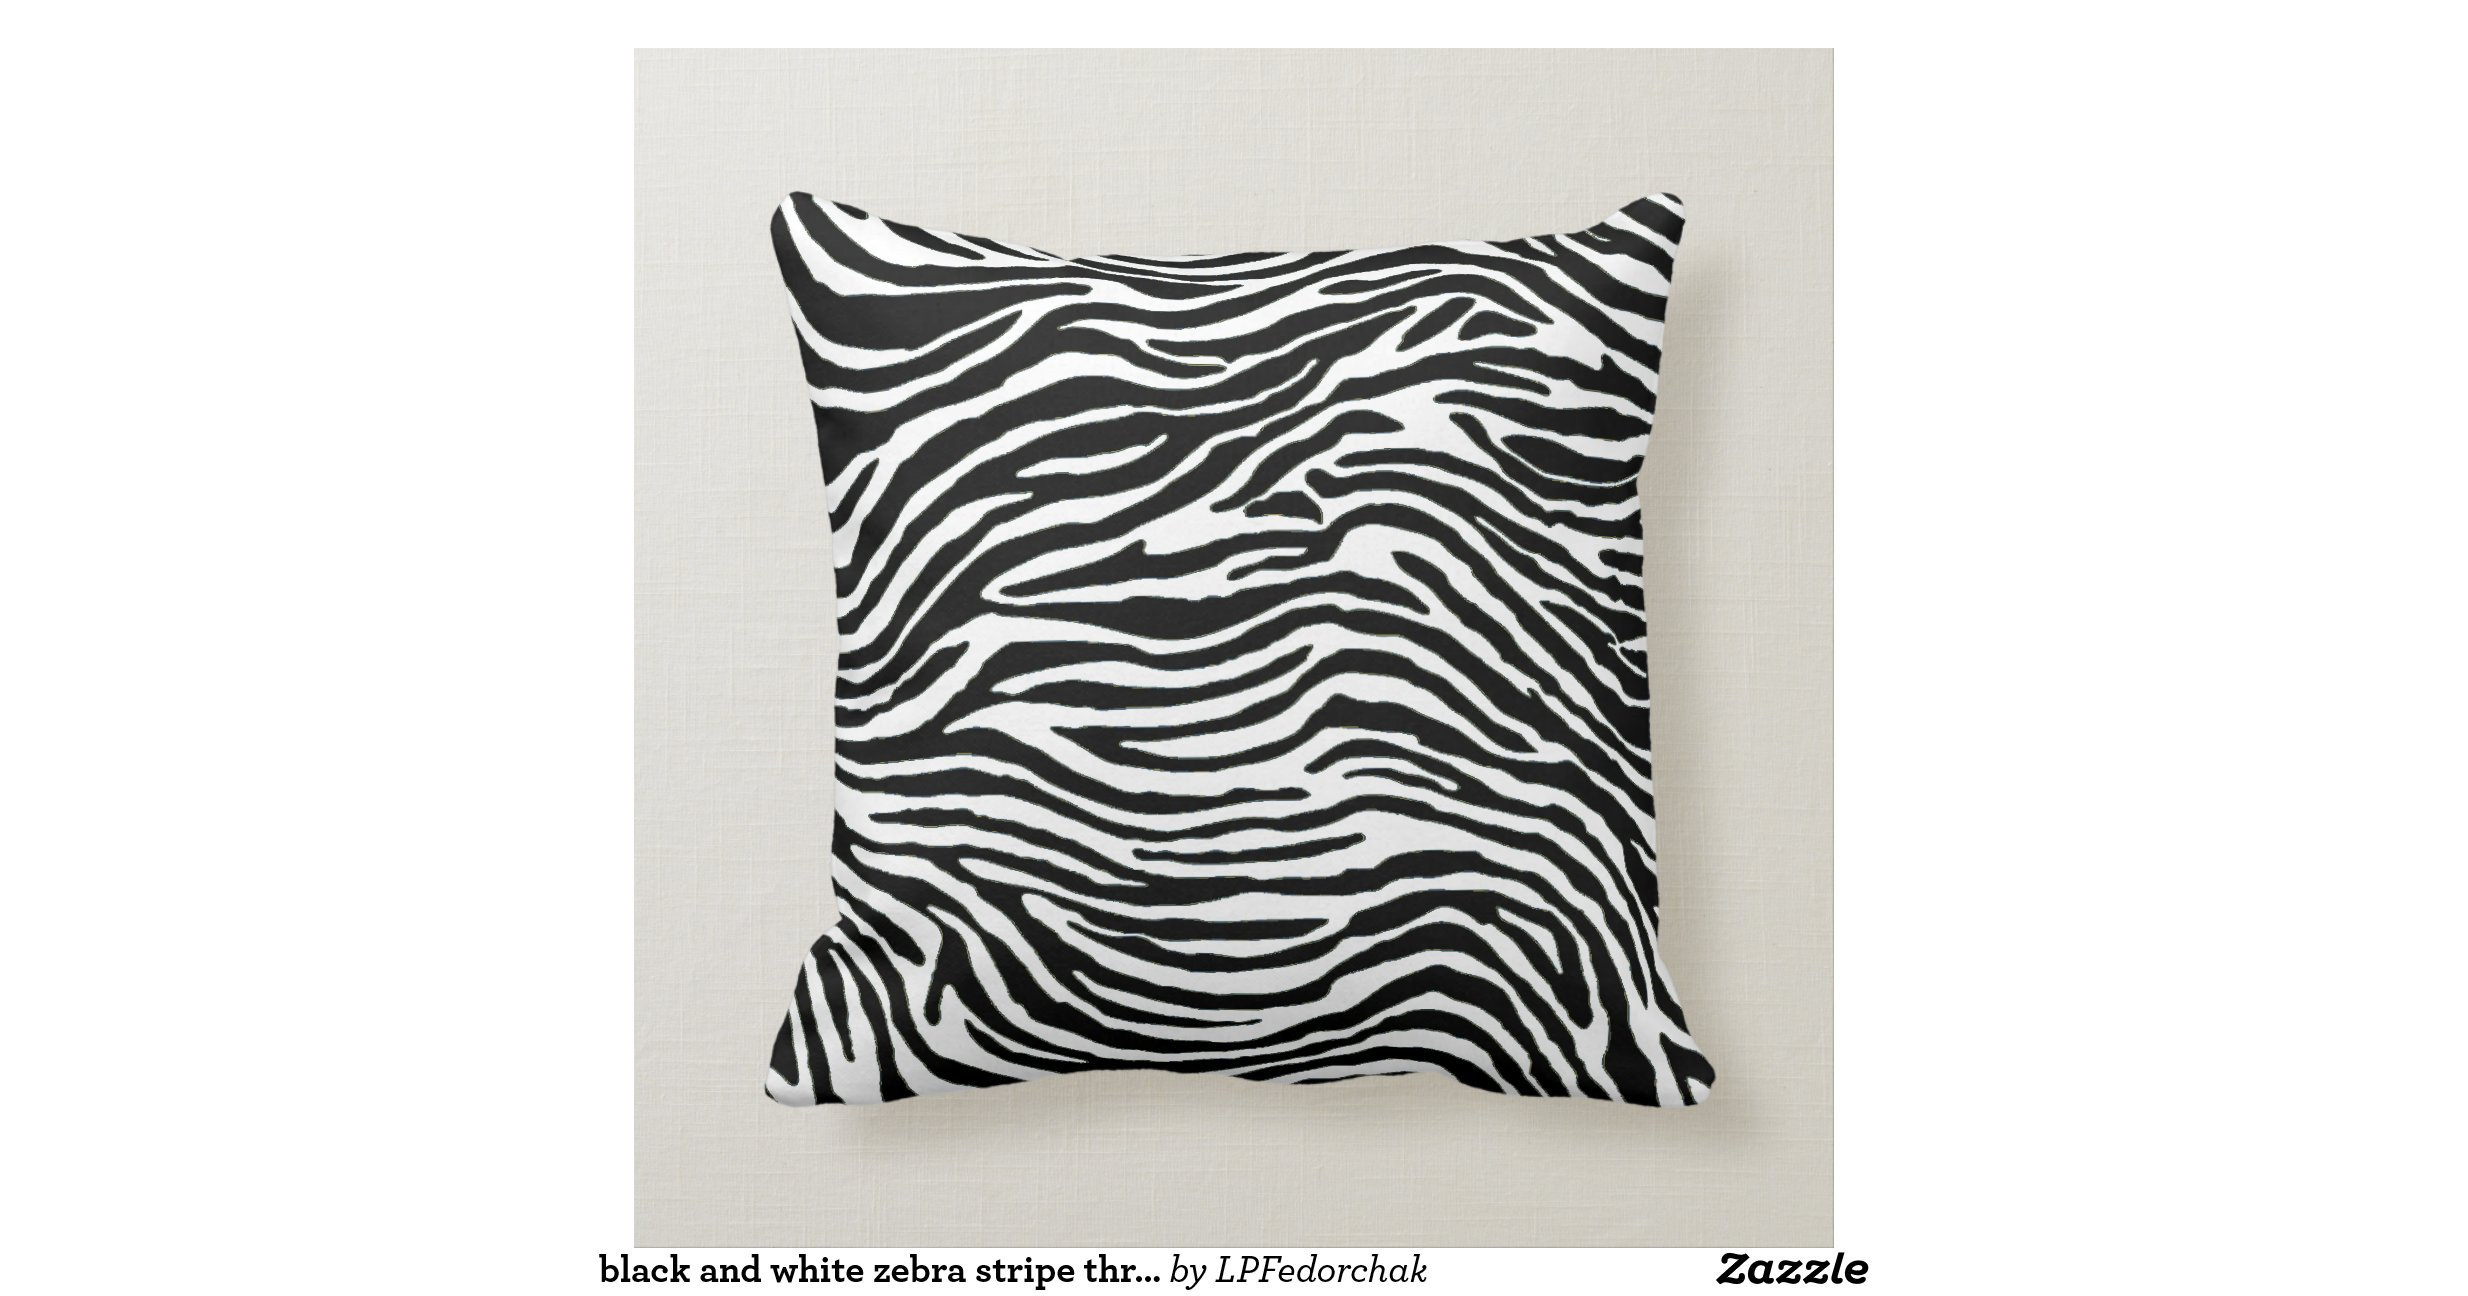 Black And White Zebra Throw Pillows : black_and_white_zebra_stripe_throw_pillow-r56d3101653874ff58b272bcecb49f0b6_i52ni_8byvr_1200.jpg ...